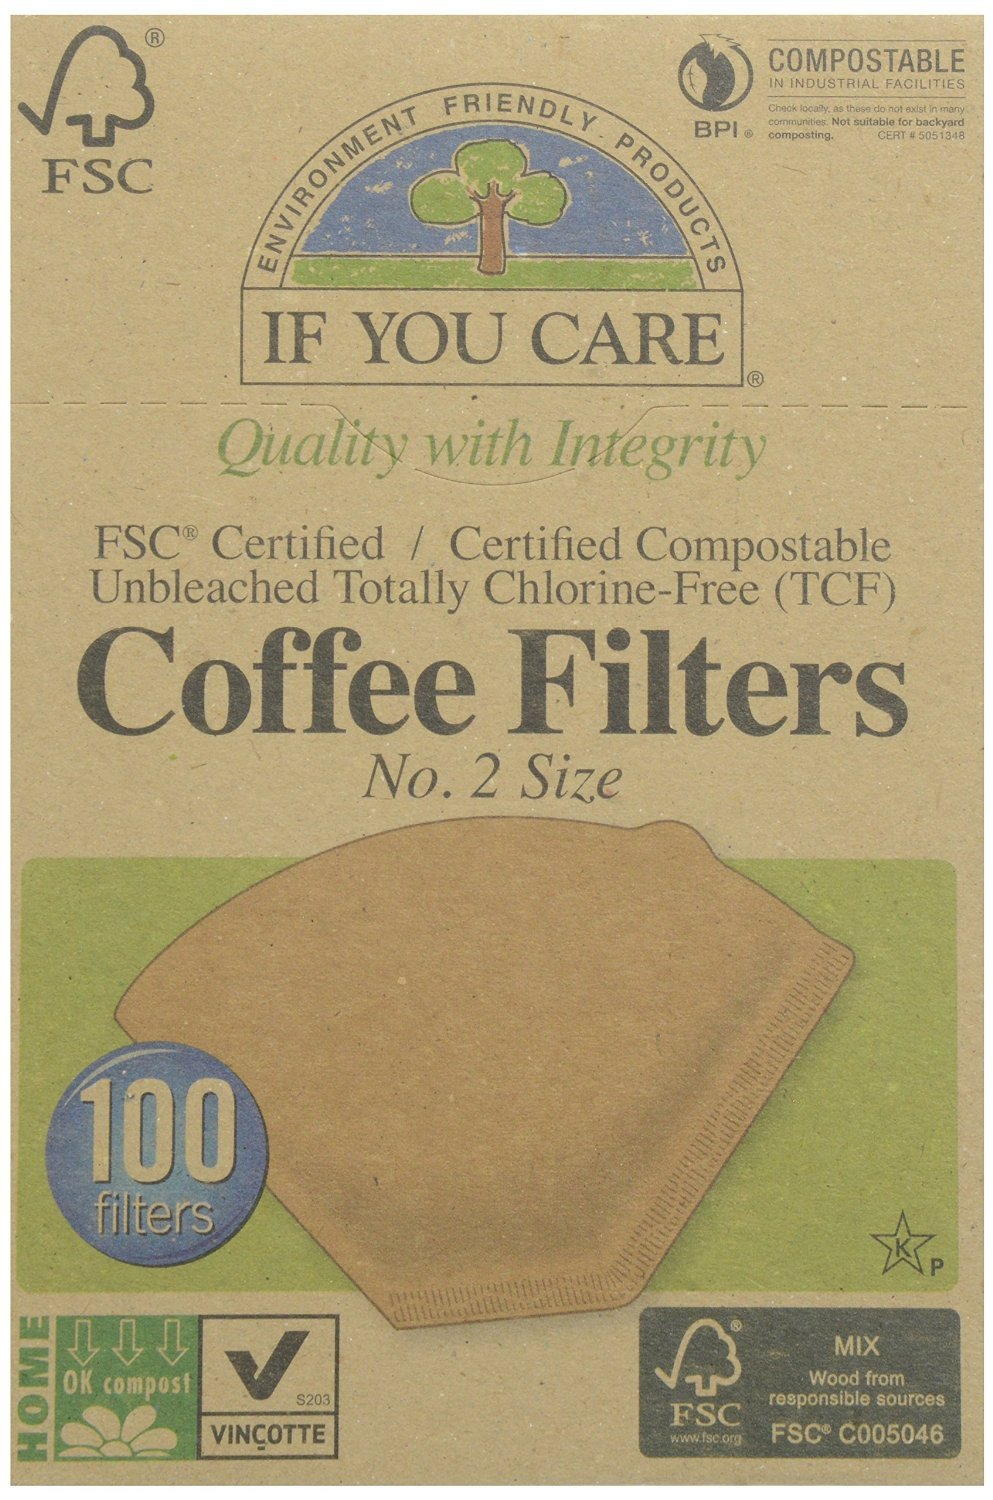 If You Care Coffee Filter No. 2 Size, Compostable, Unbleached, 100-count, 3-pack (300 Filters Total)